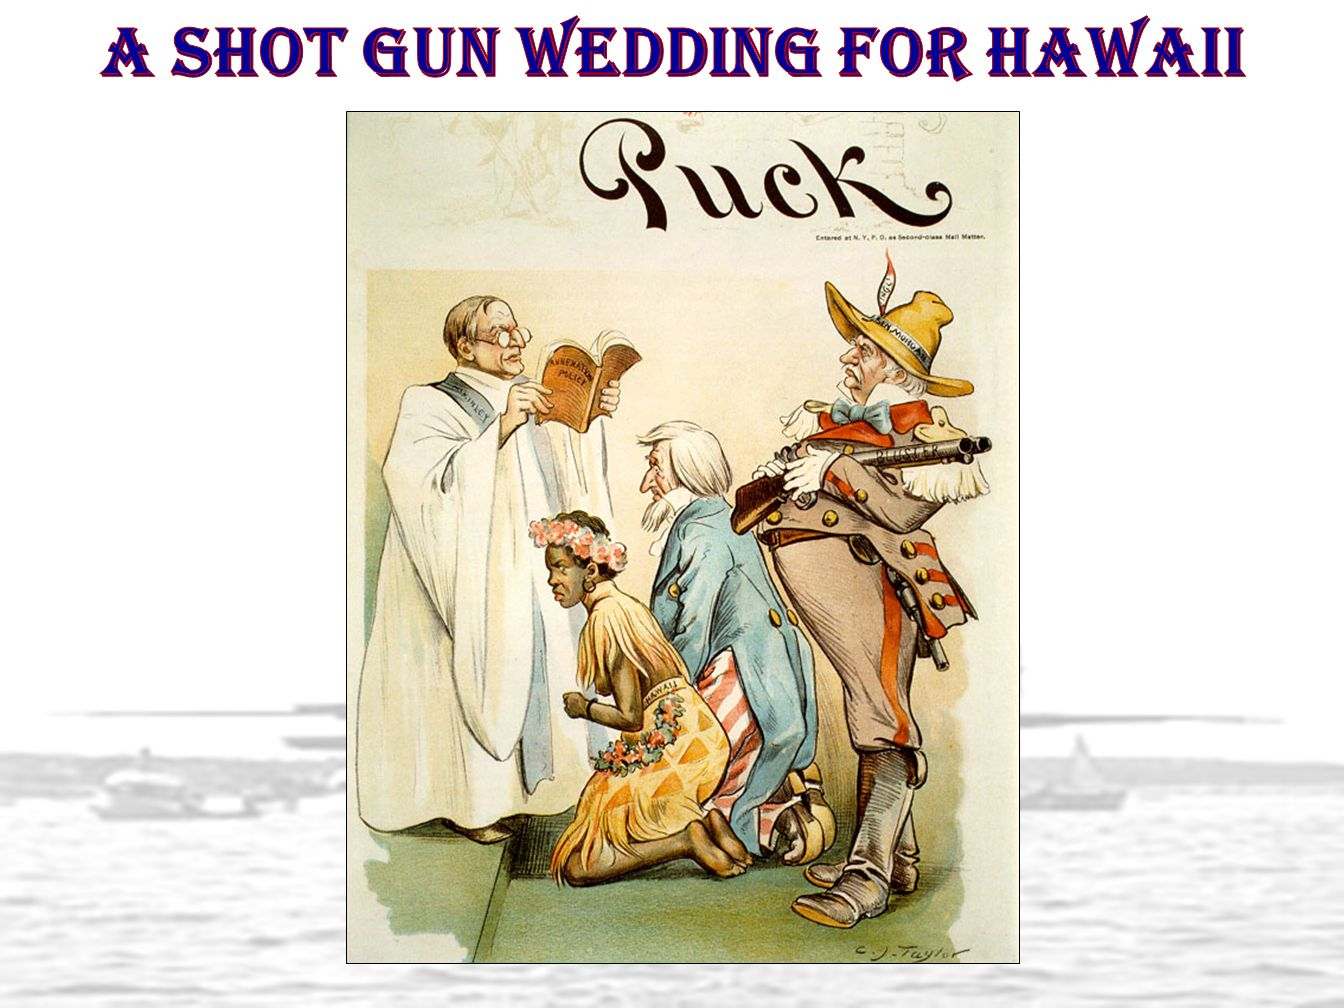 A shot gun wedding for Hawaii